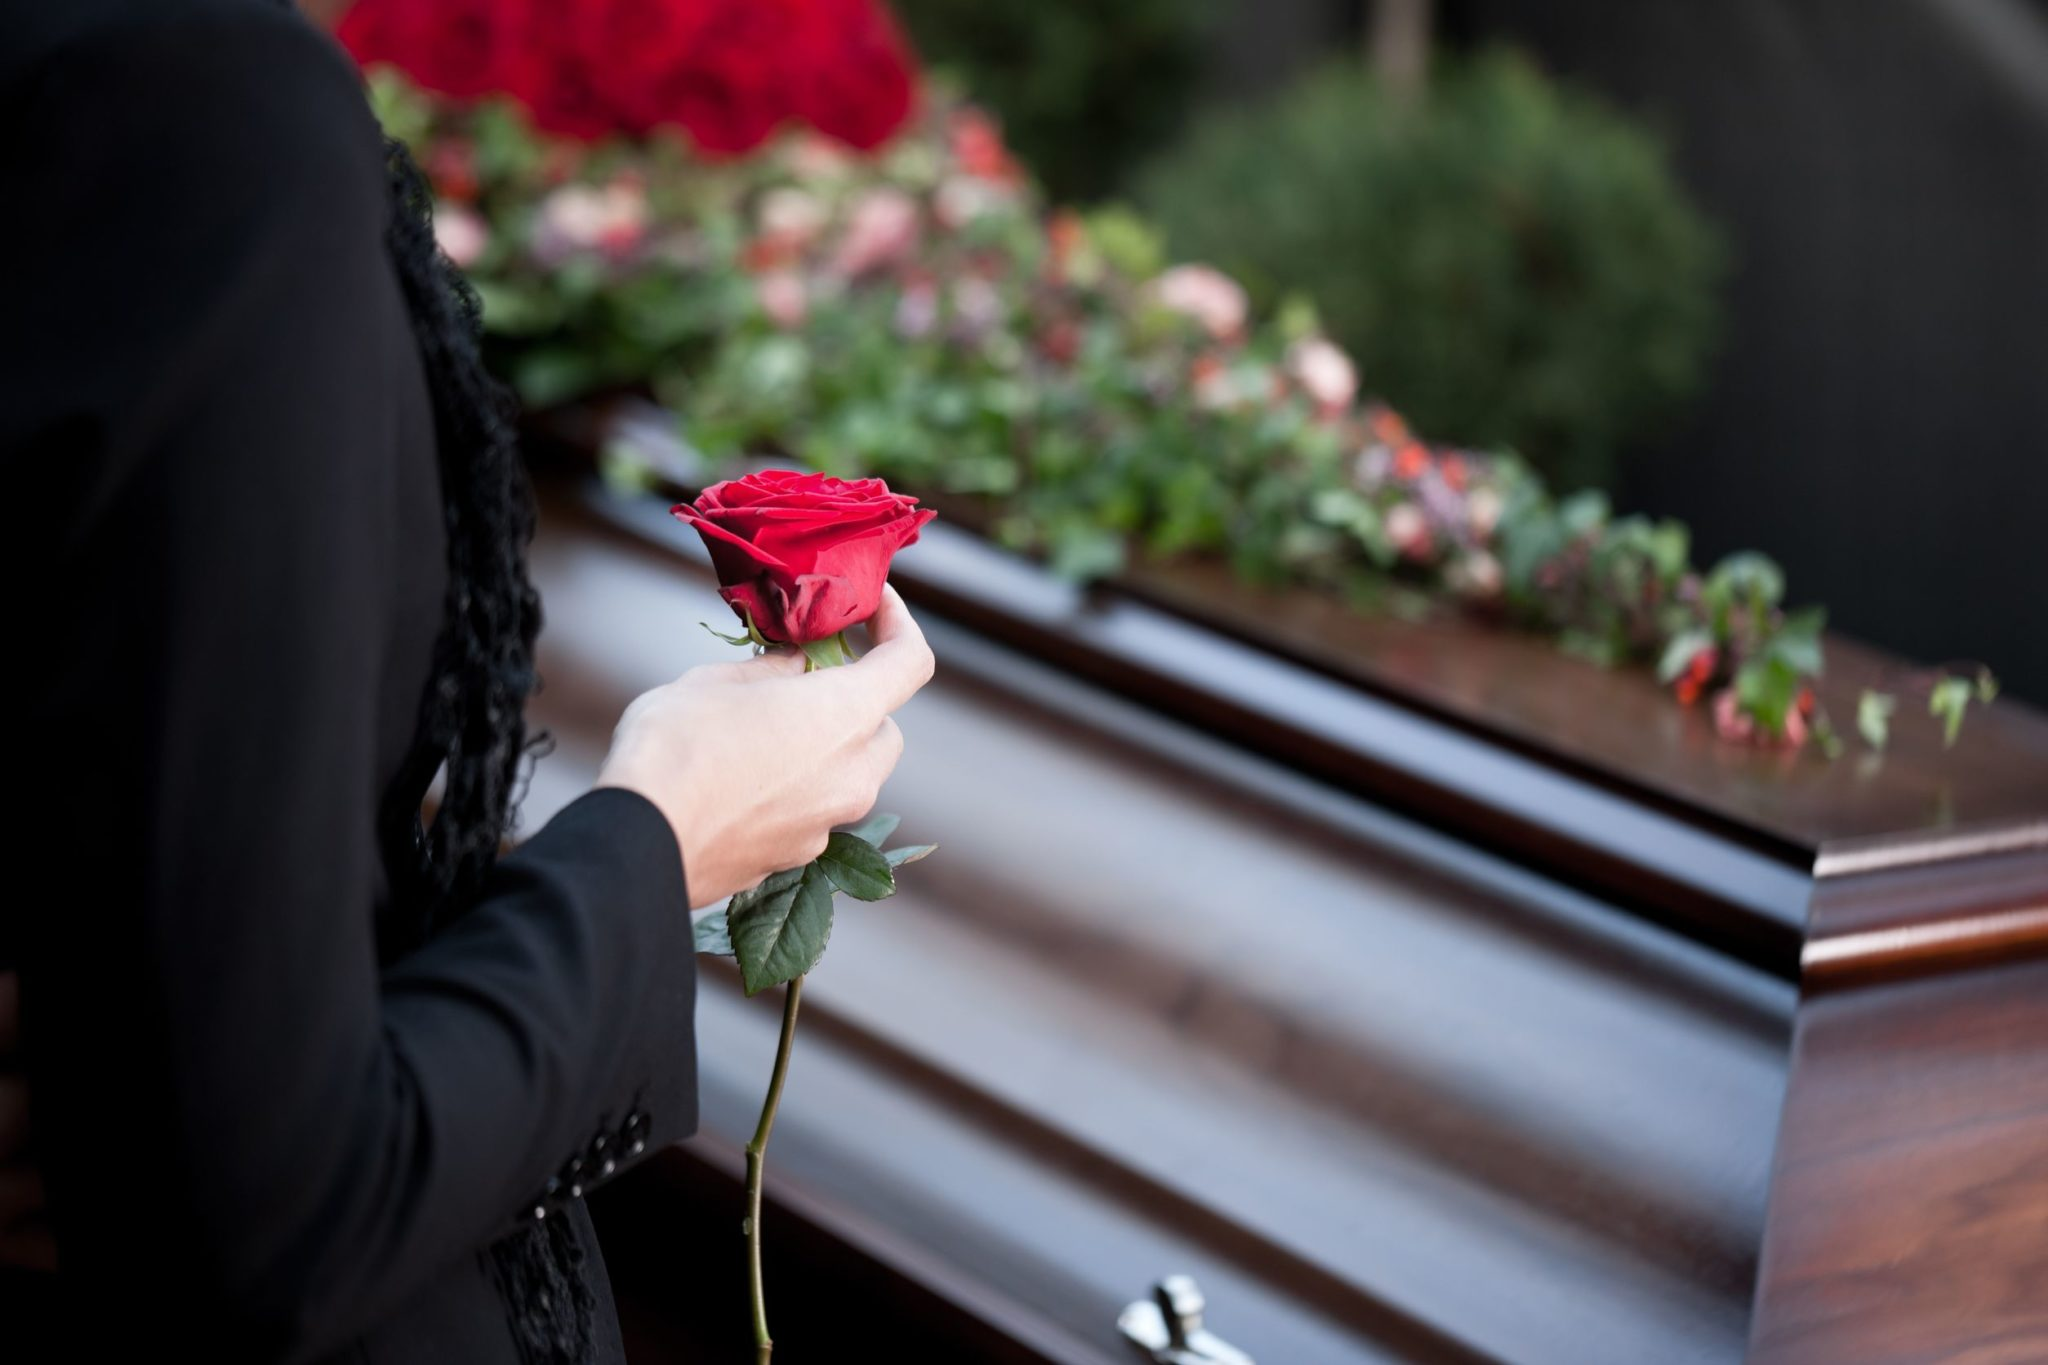 Have A Wrongful Death claim, contact Luhrsen Goldberg today